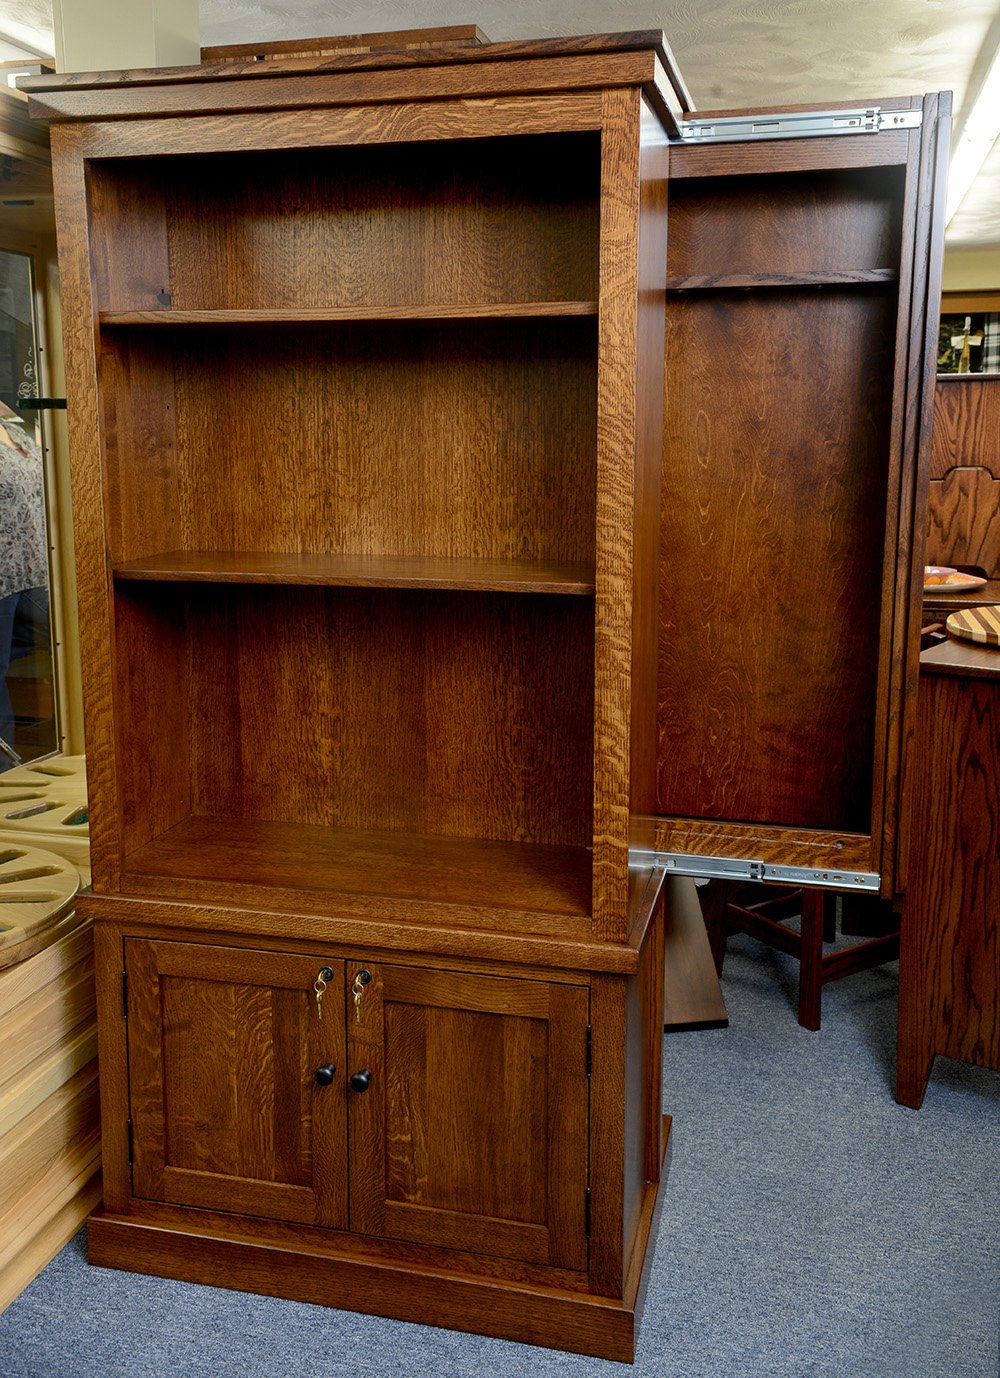 Concealment Wood Grains Furniture Gifts Rocky Mount Va